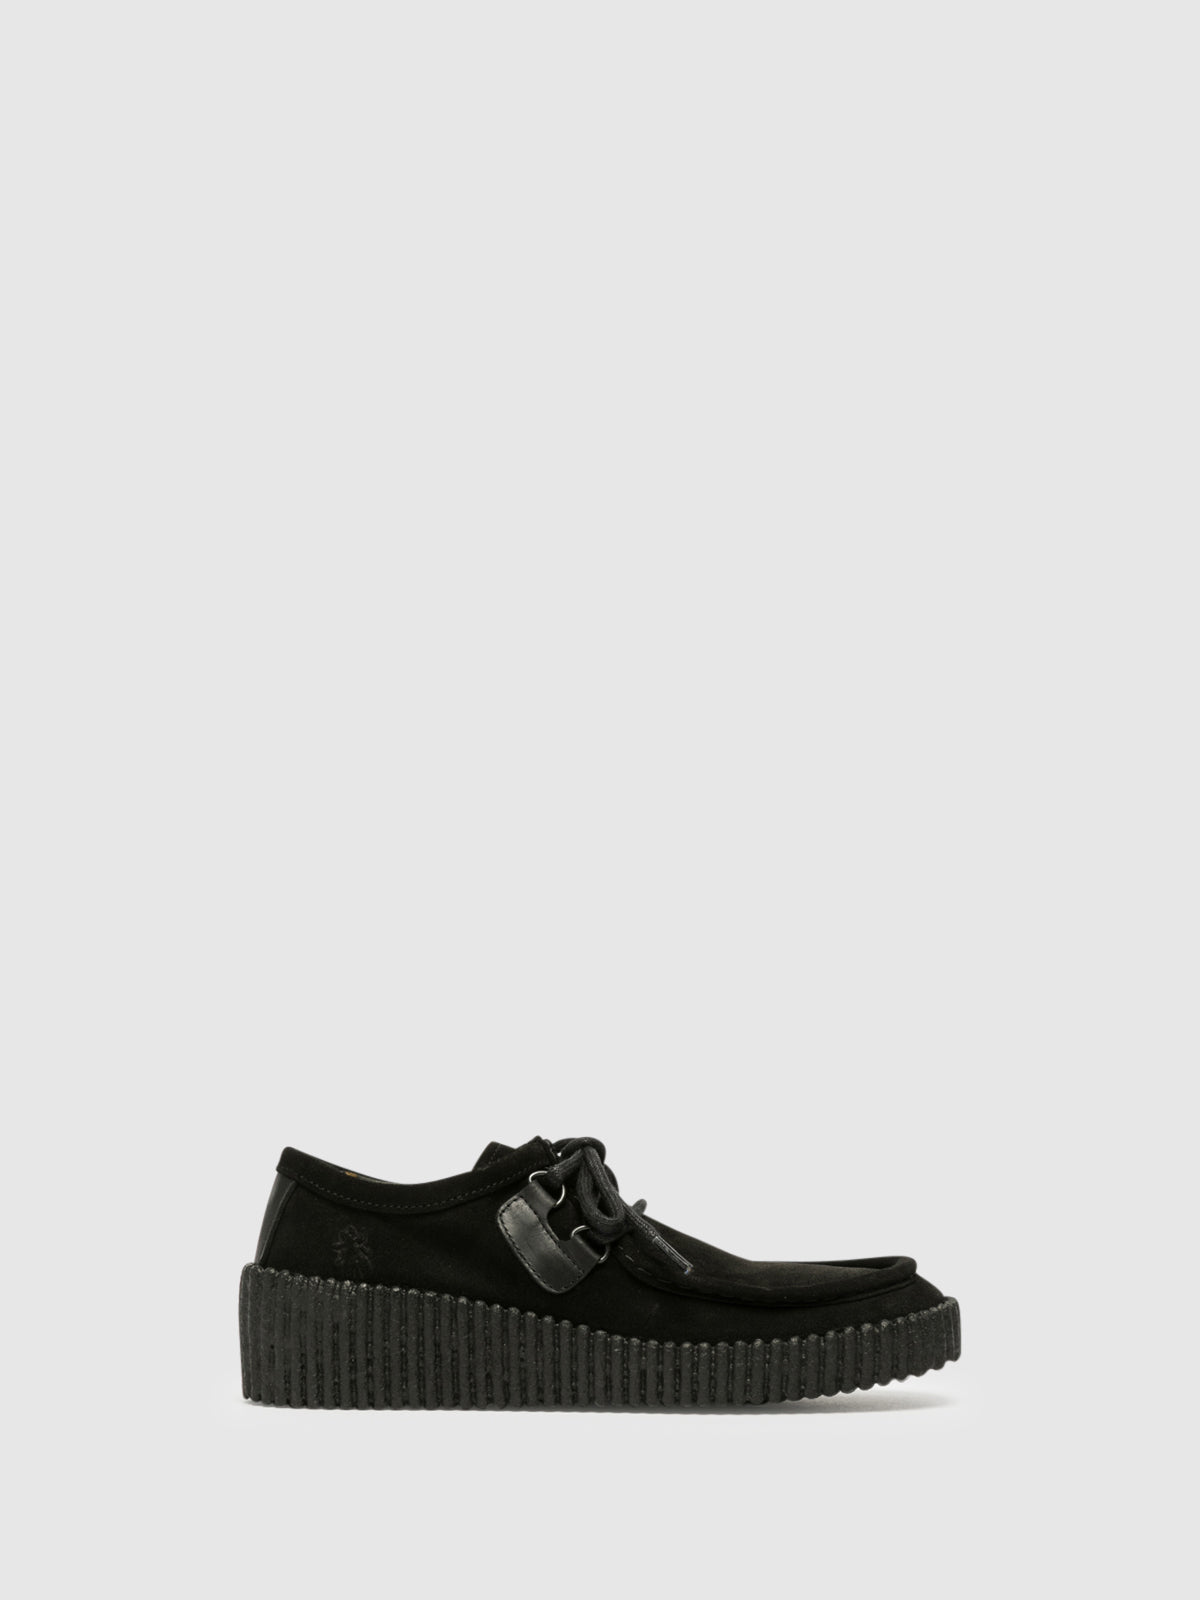 Fly London Black Platform Shoes